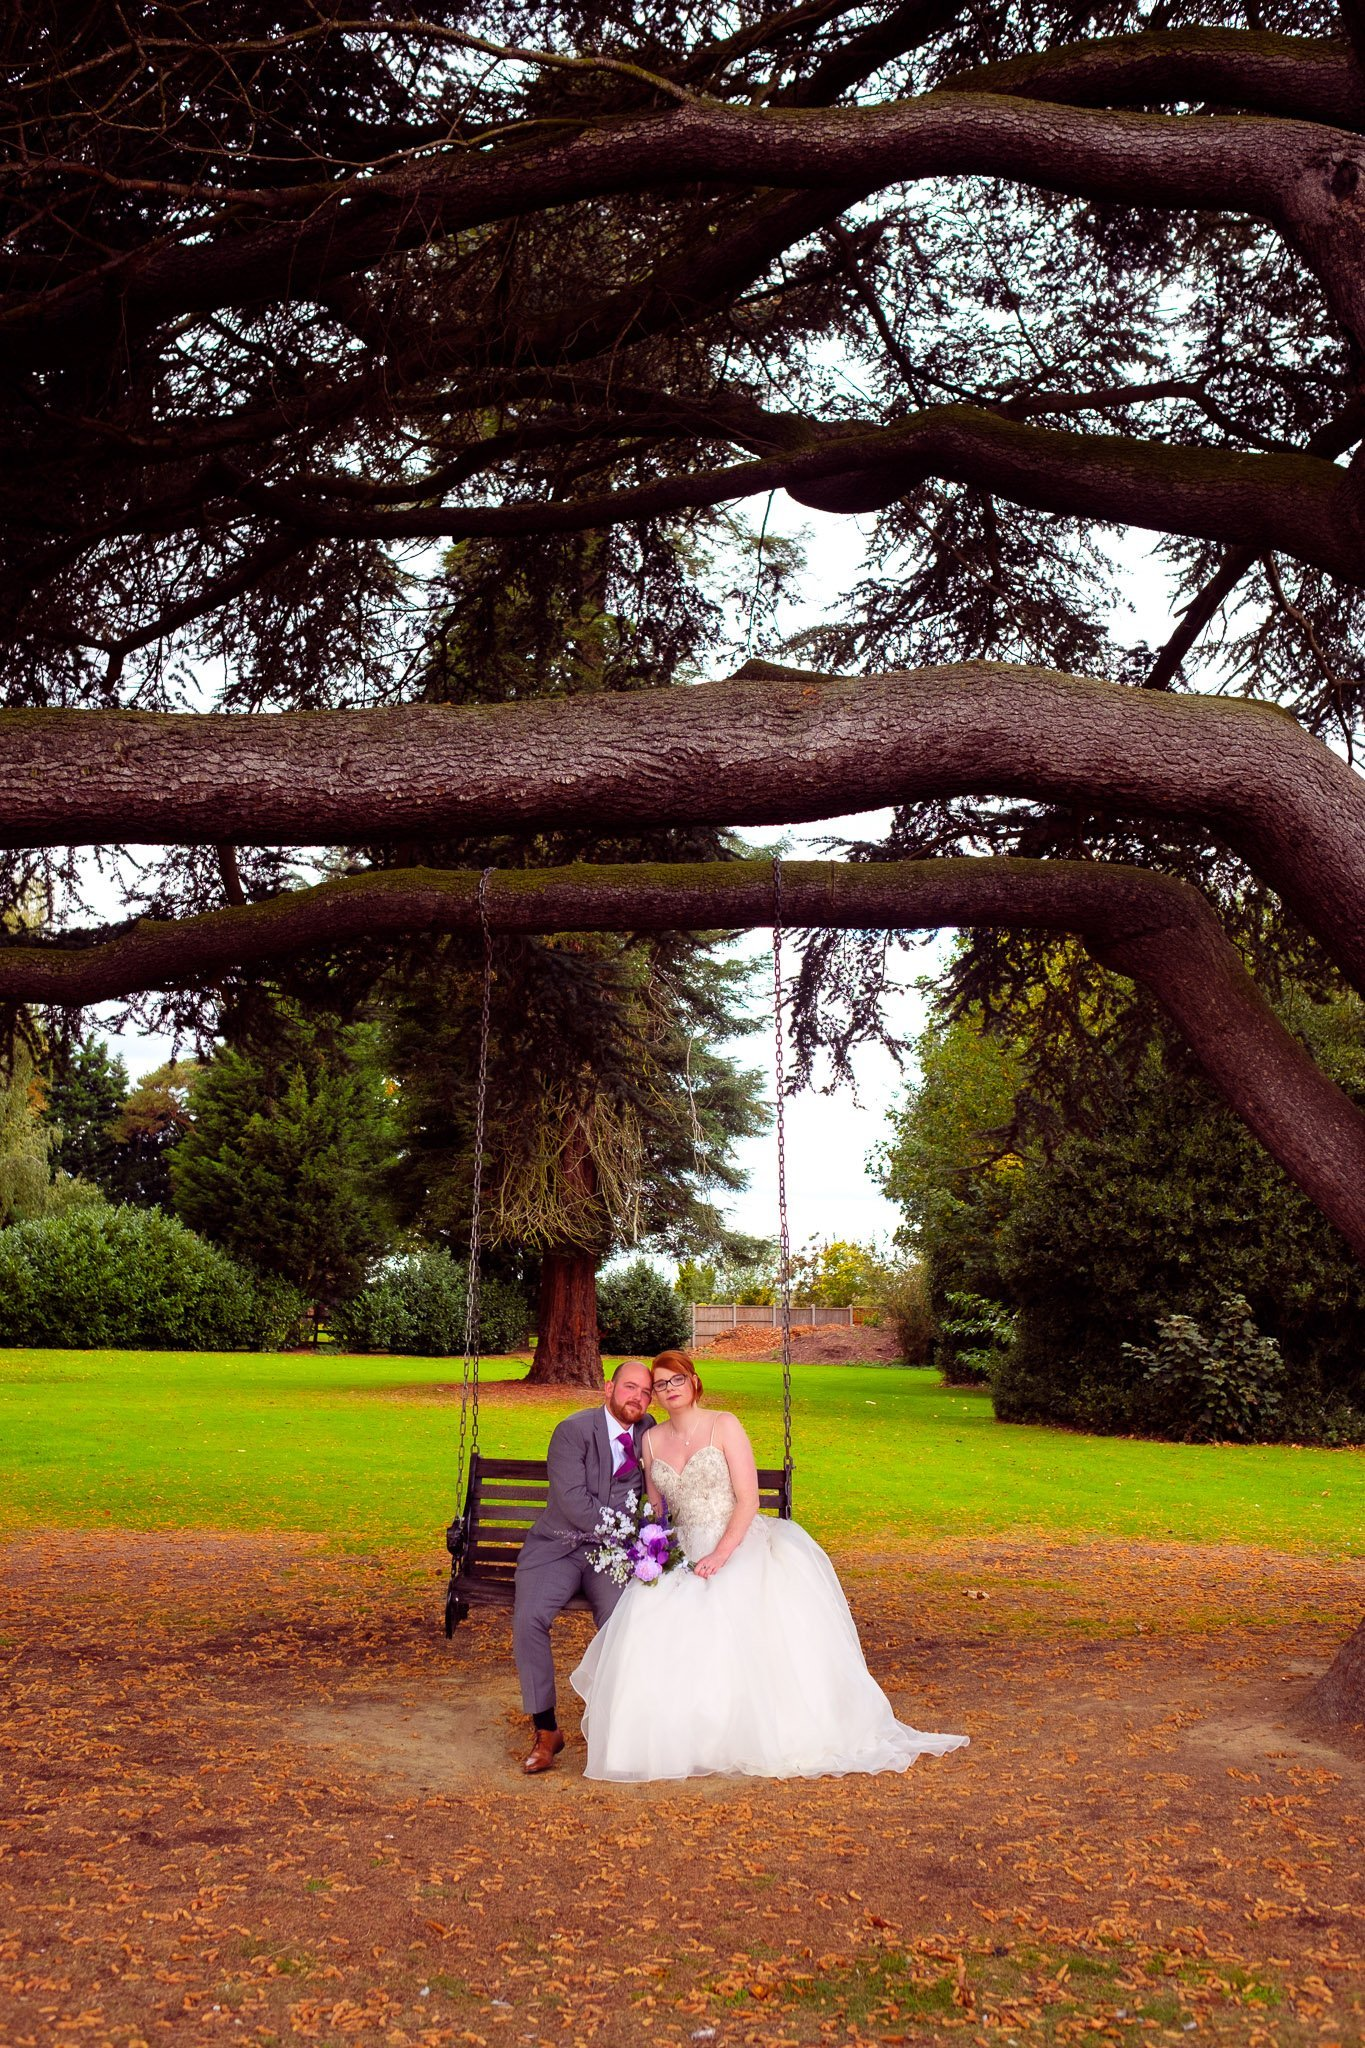 Bride and groom portrait sitting on a wooden swing under a tree at Orsett Hall Hotel Essex Wedding